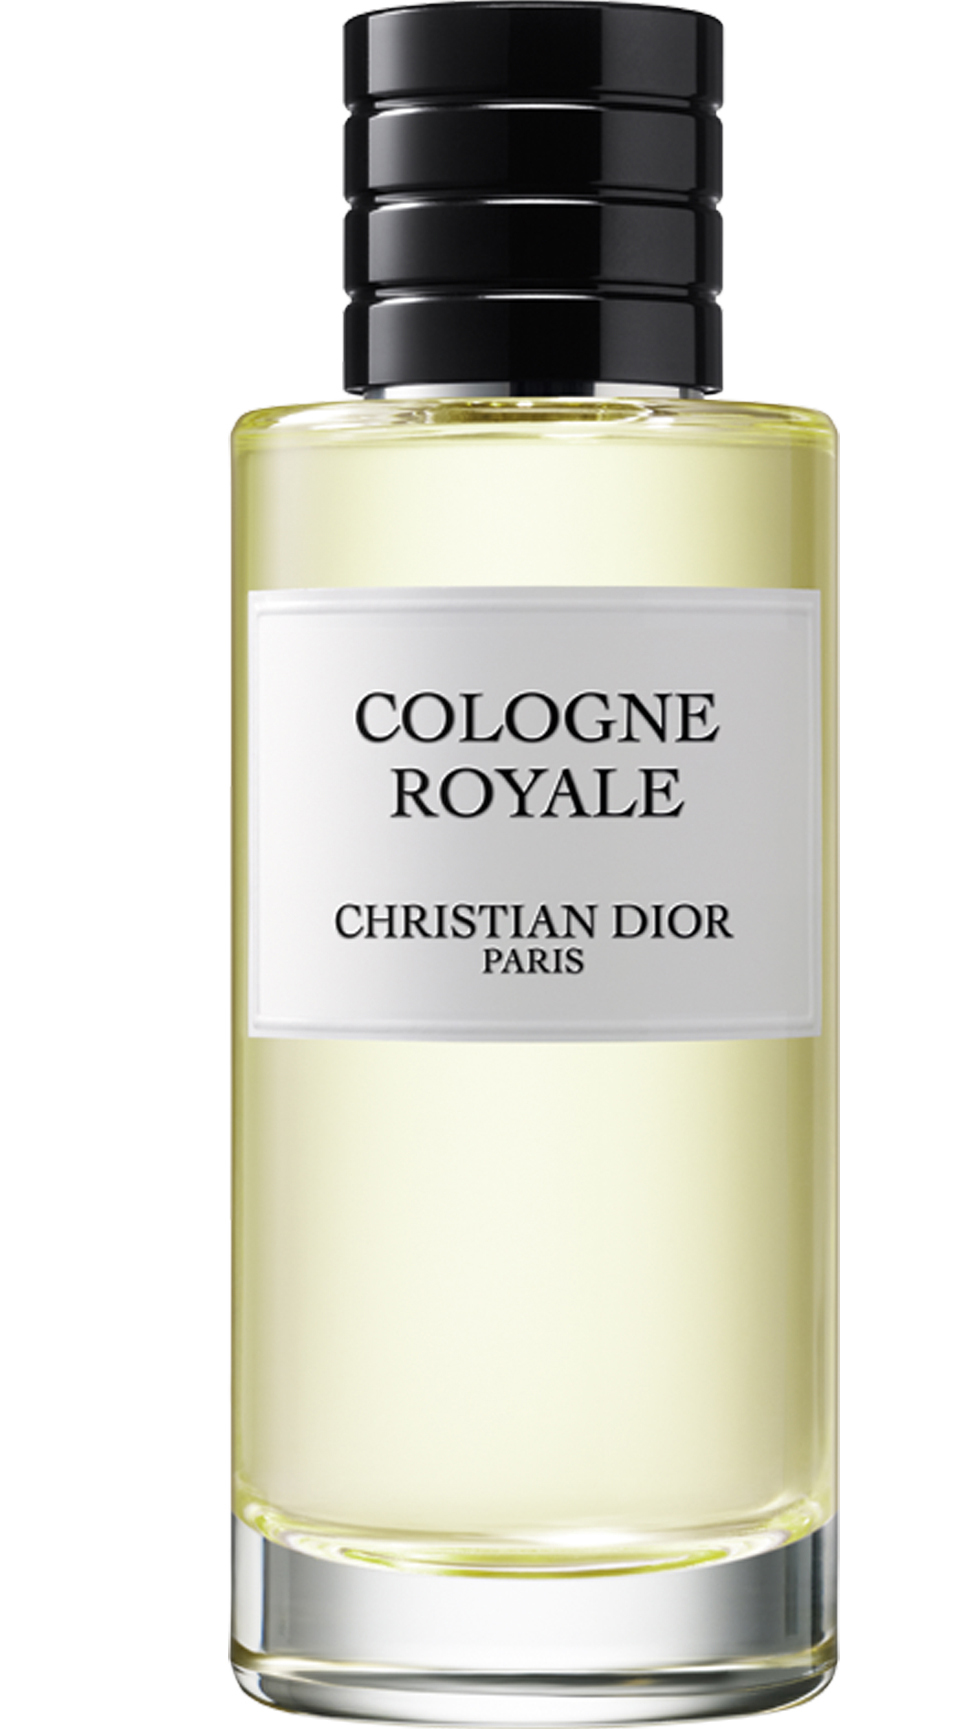 Christian Dior The Collection Couturier Parfumeur Cologne Royale одеколон 125мл (Кристиан Диор Колонь Рояль)